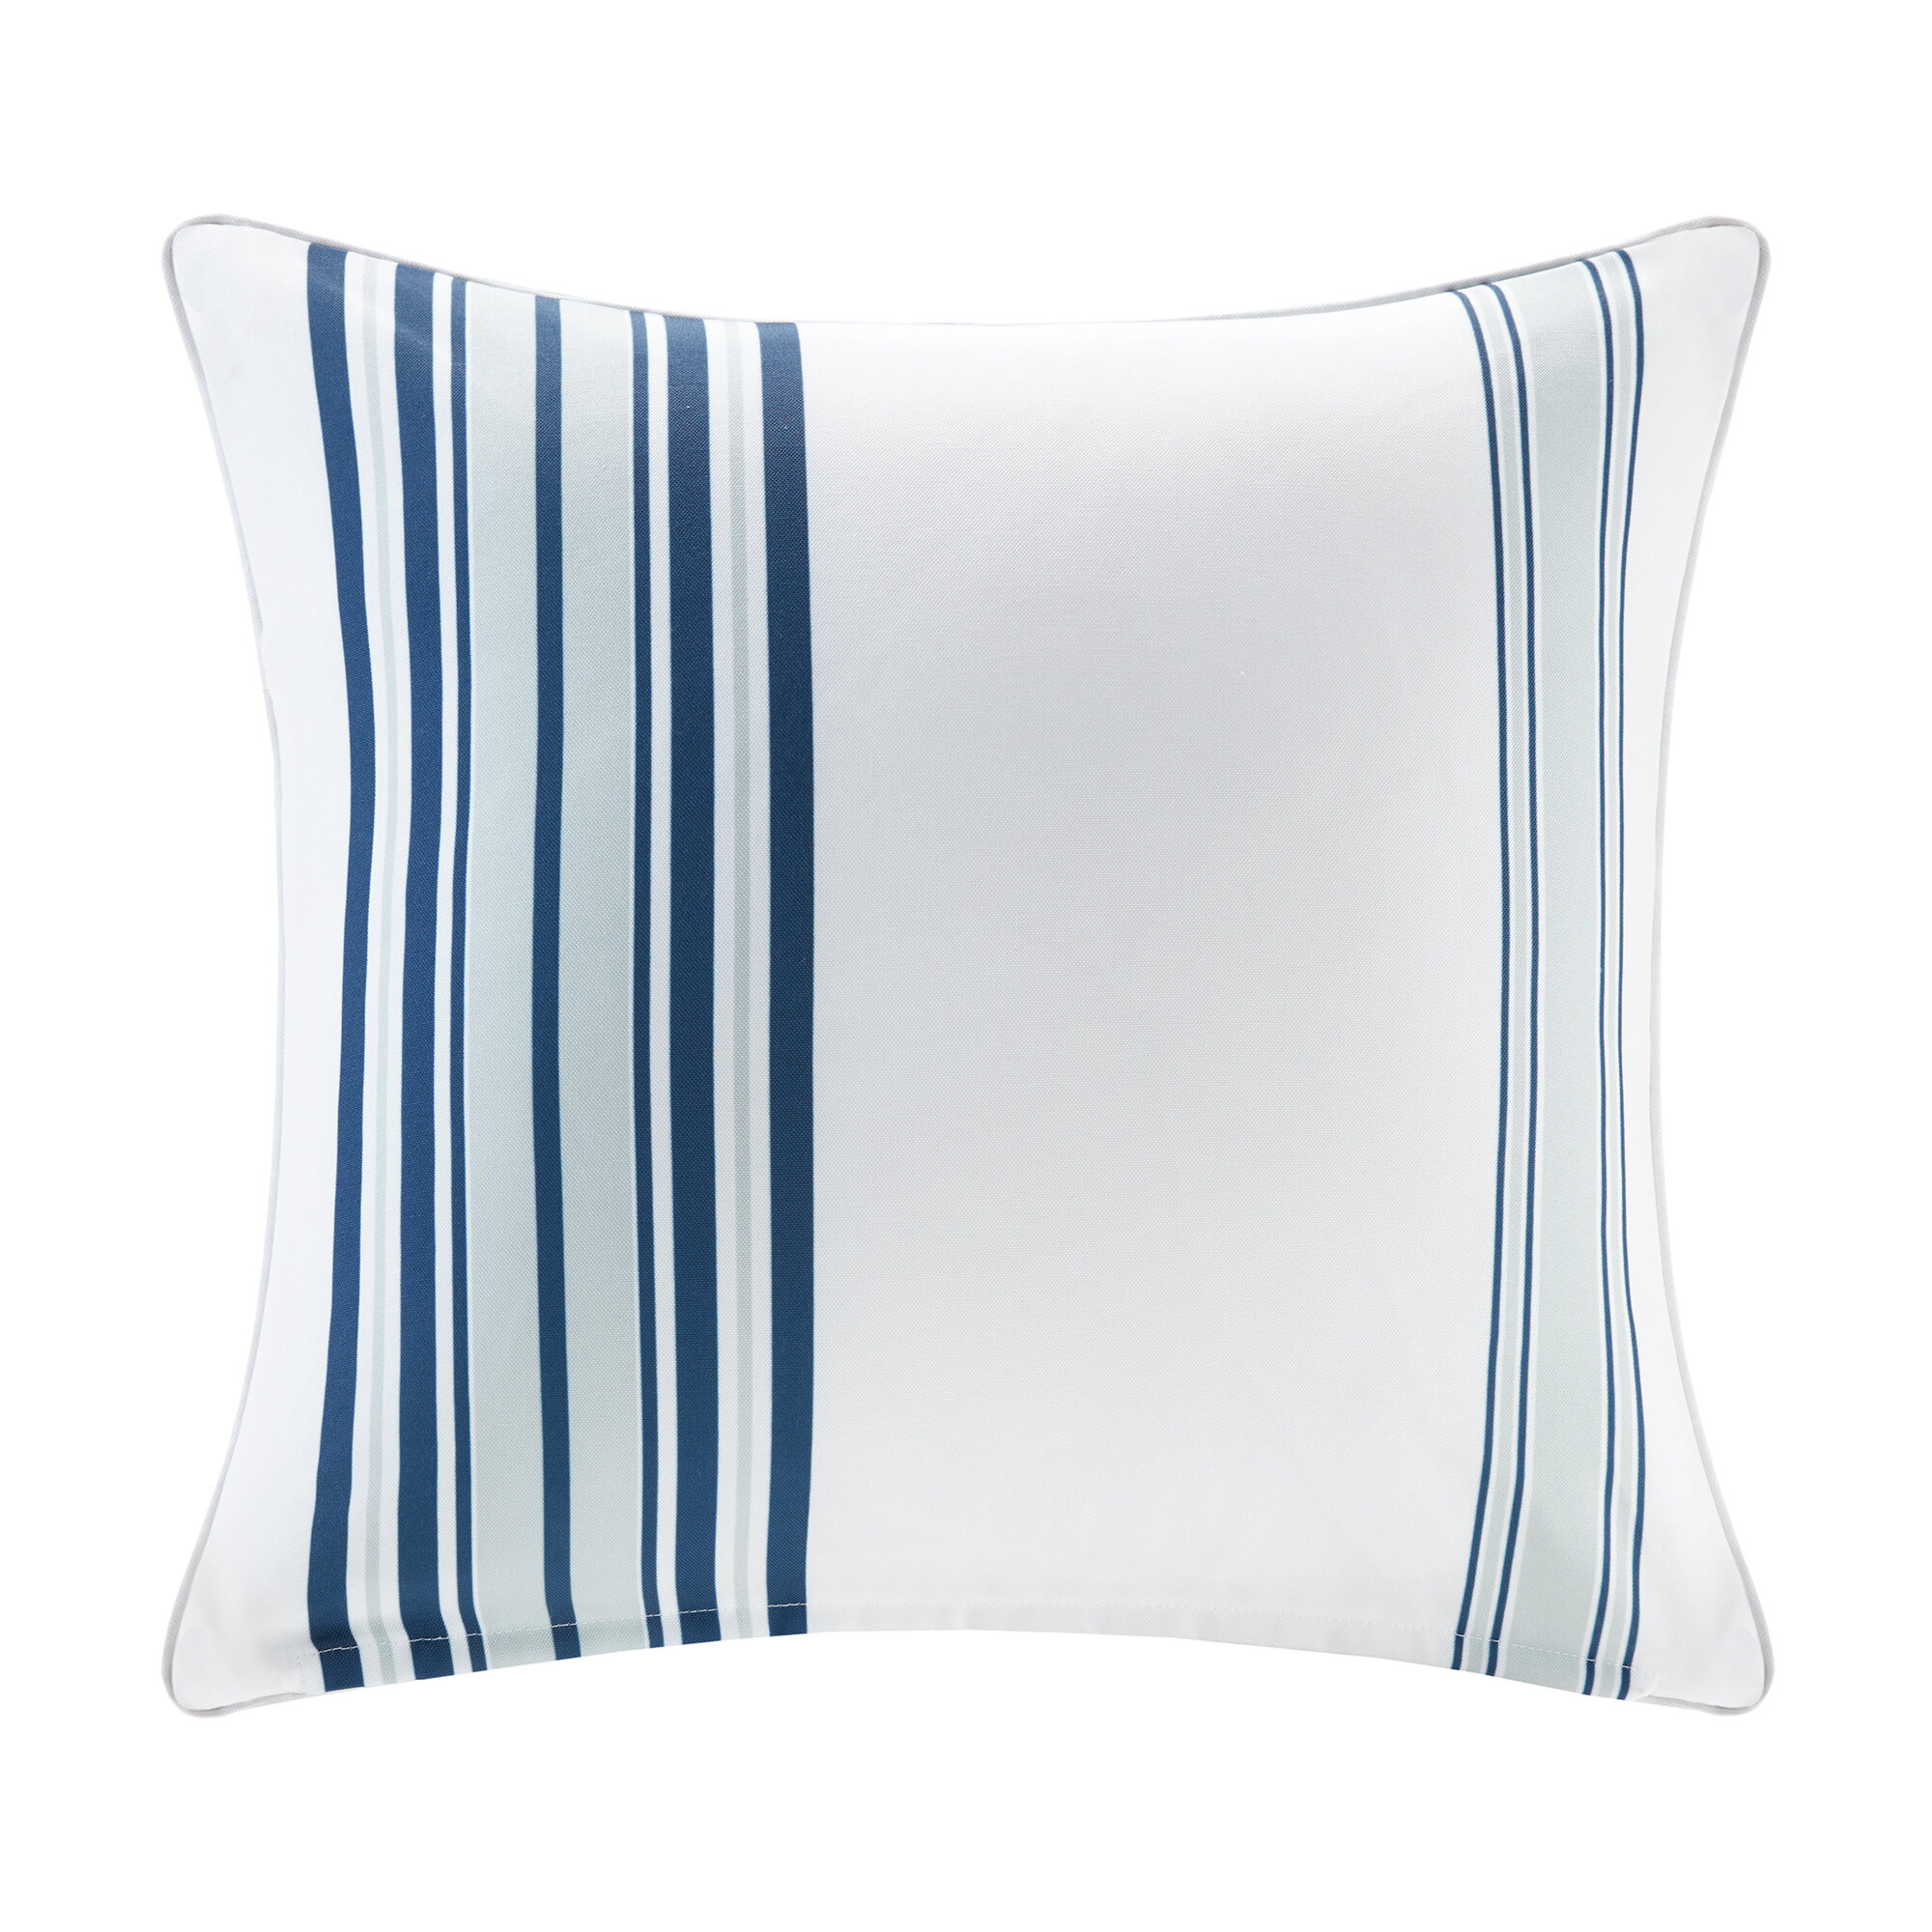 Outdoor Striped Throw Pillows You'll Love in 2019 | Wayfair